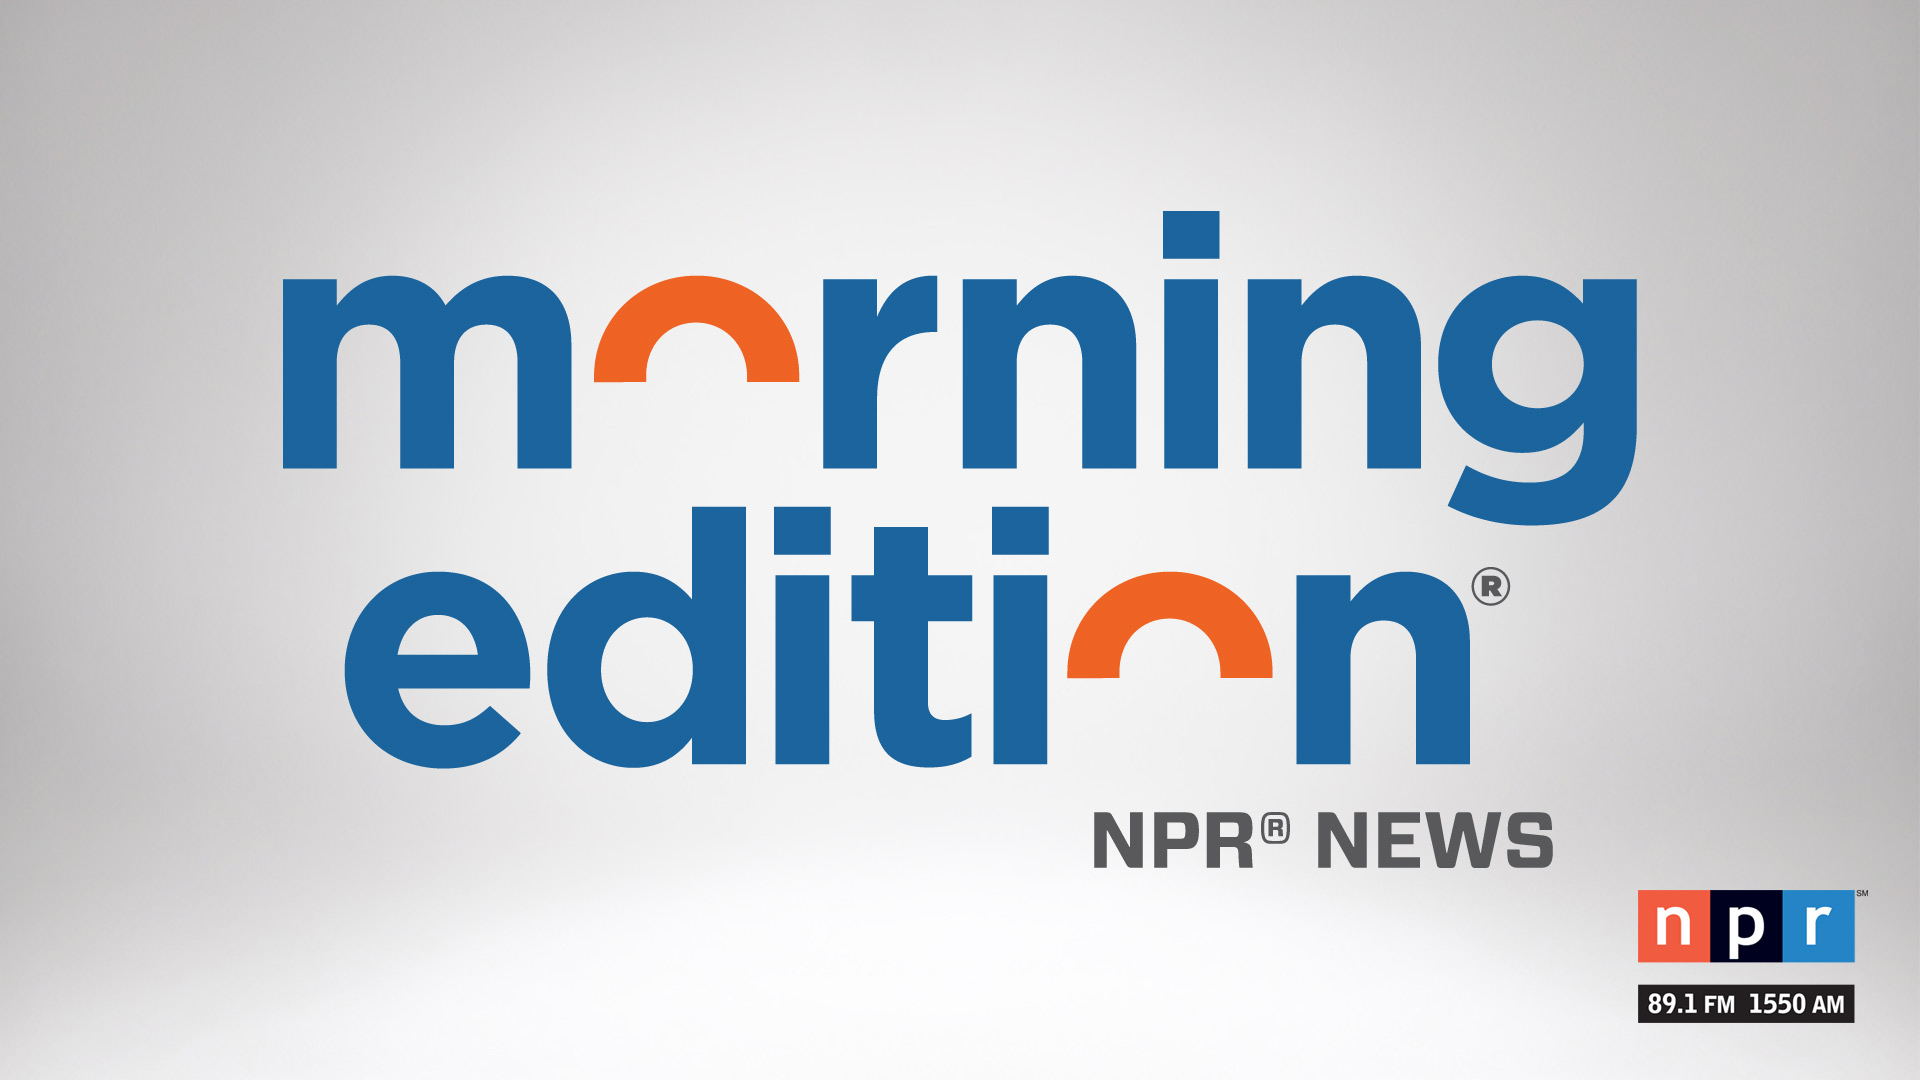 Morning Edition airs every weekday on NPR 89.1.